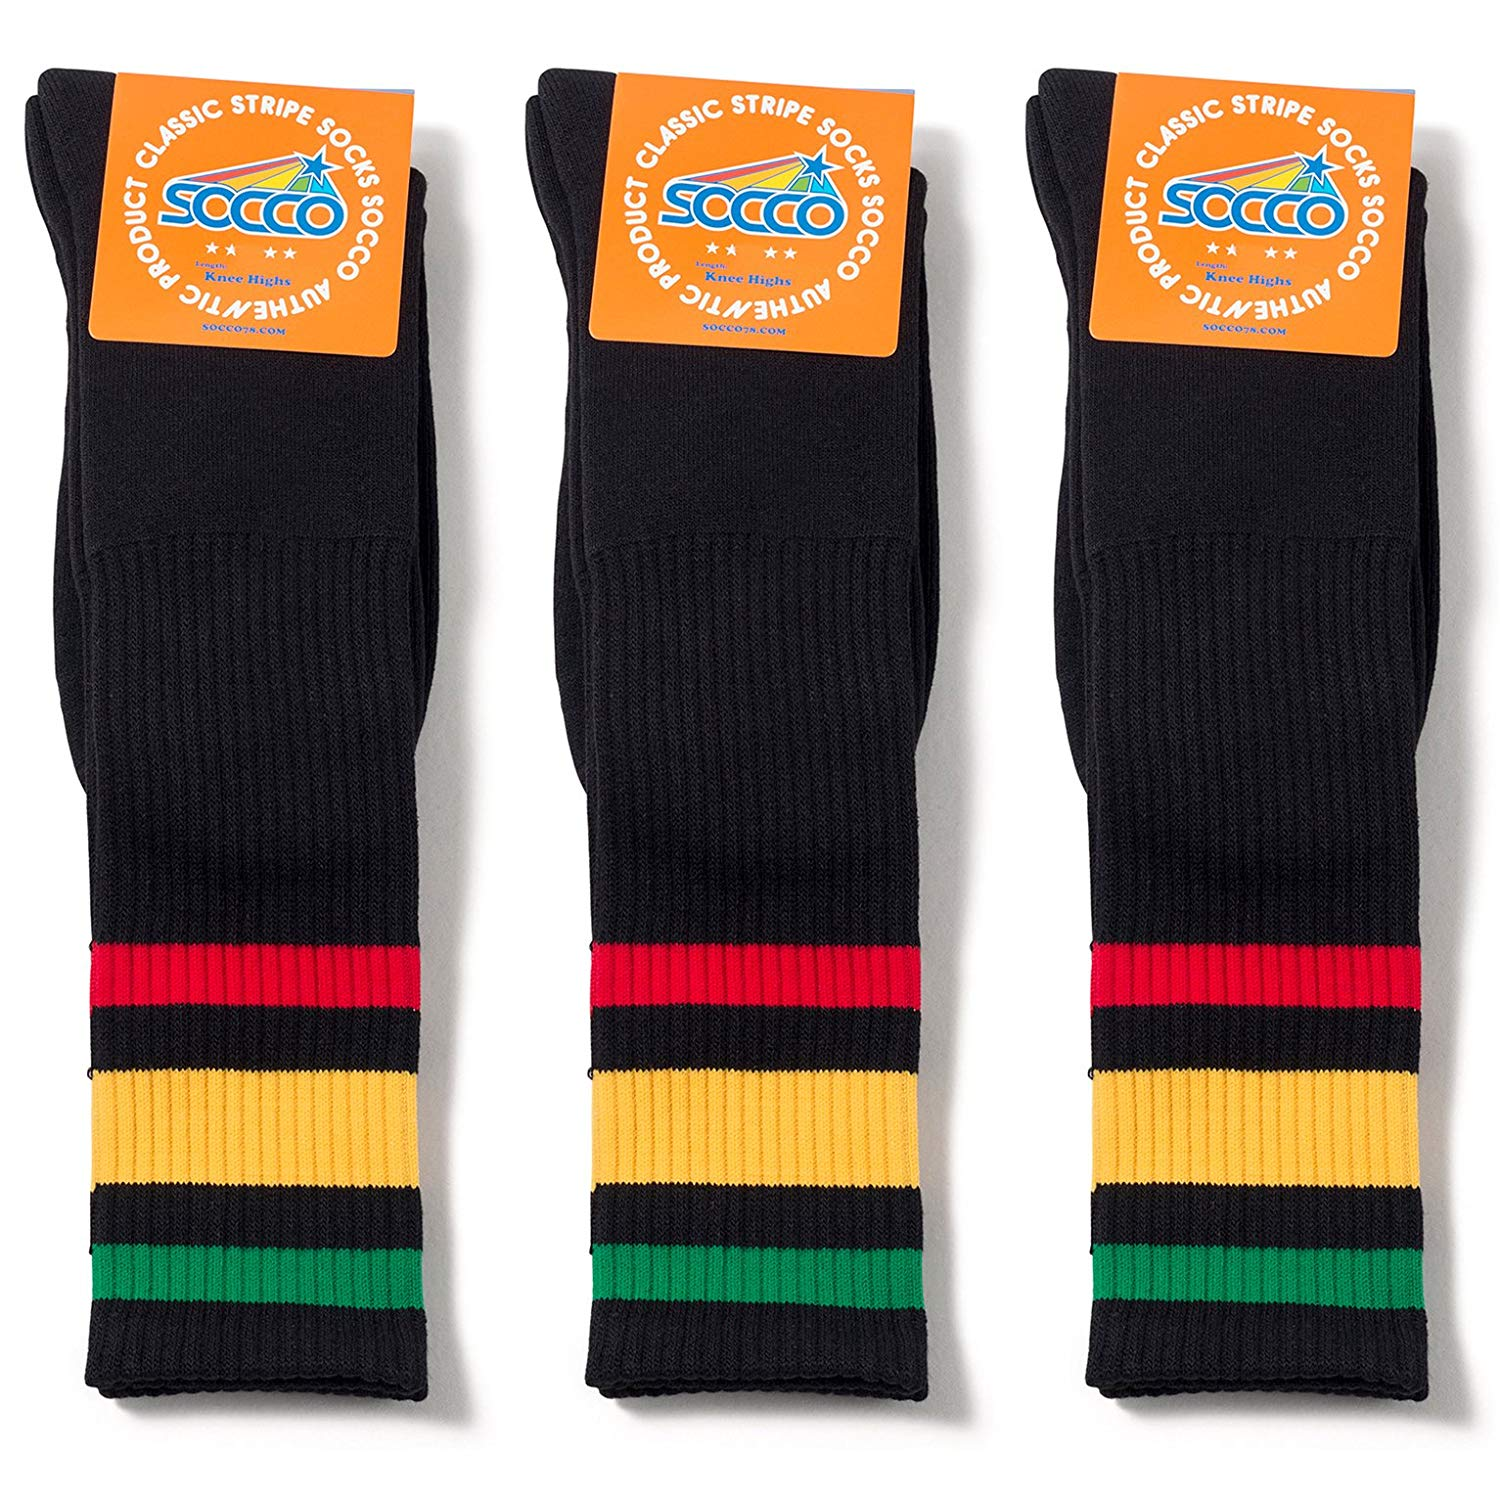 Socco Socks Unisex Black Triple Striped Rasta Green/Yellow / Red Knee High Tube Socks Bundle of 3 Pairs - Small/Medium (6-9)